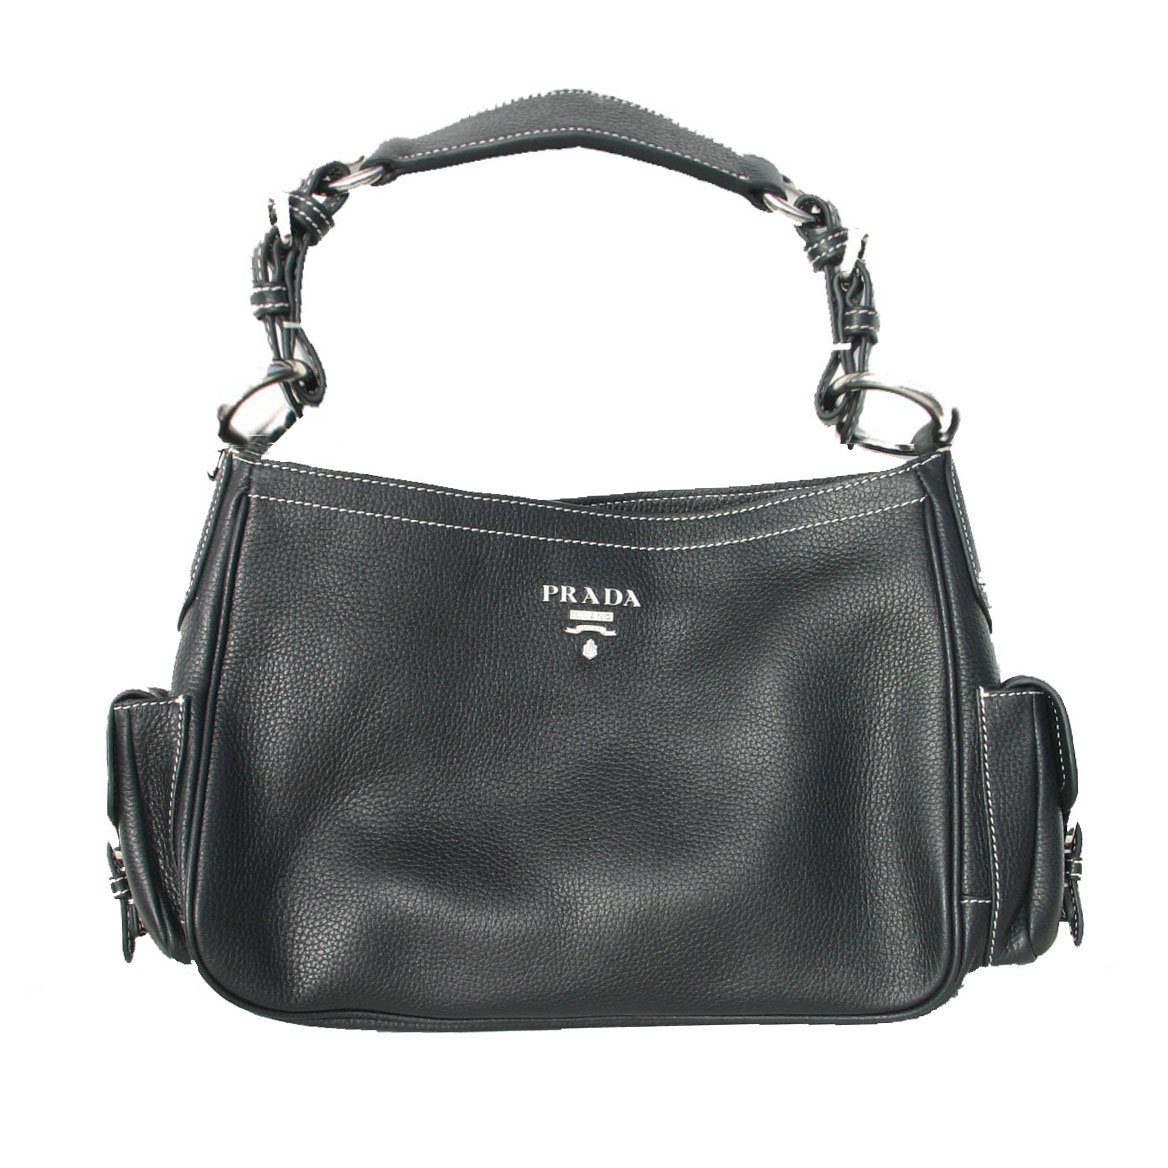 Prada BR3353 Leather Vitello Daino Handbag - Black